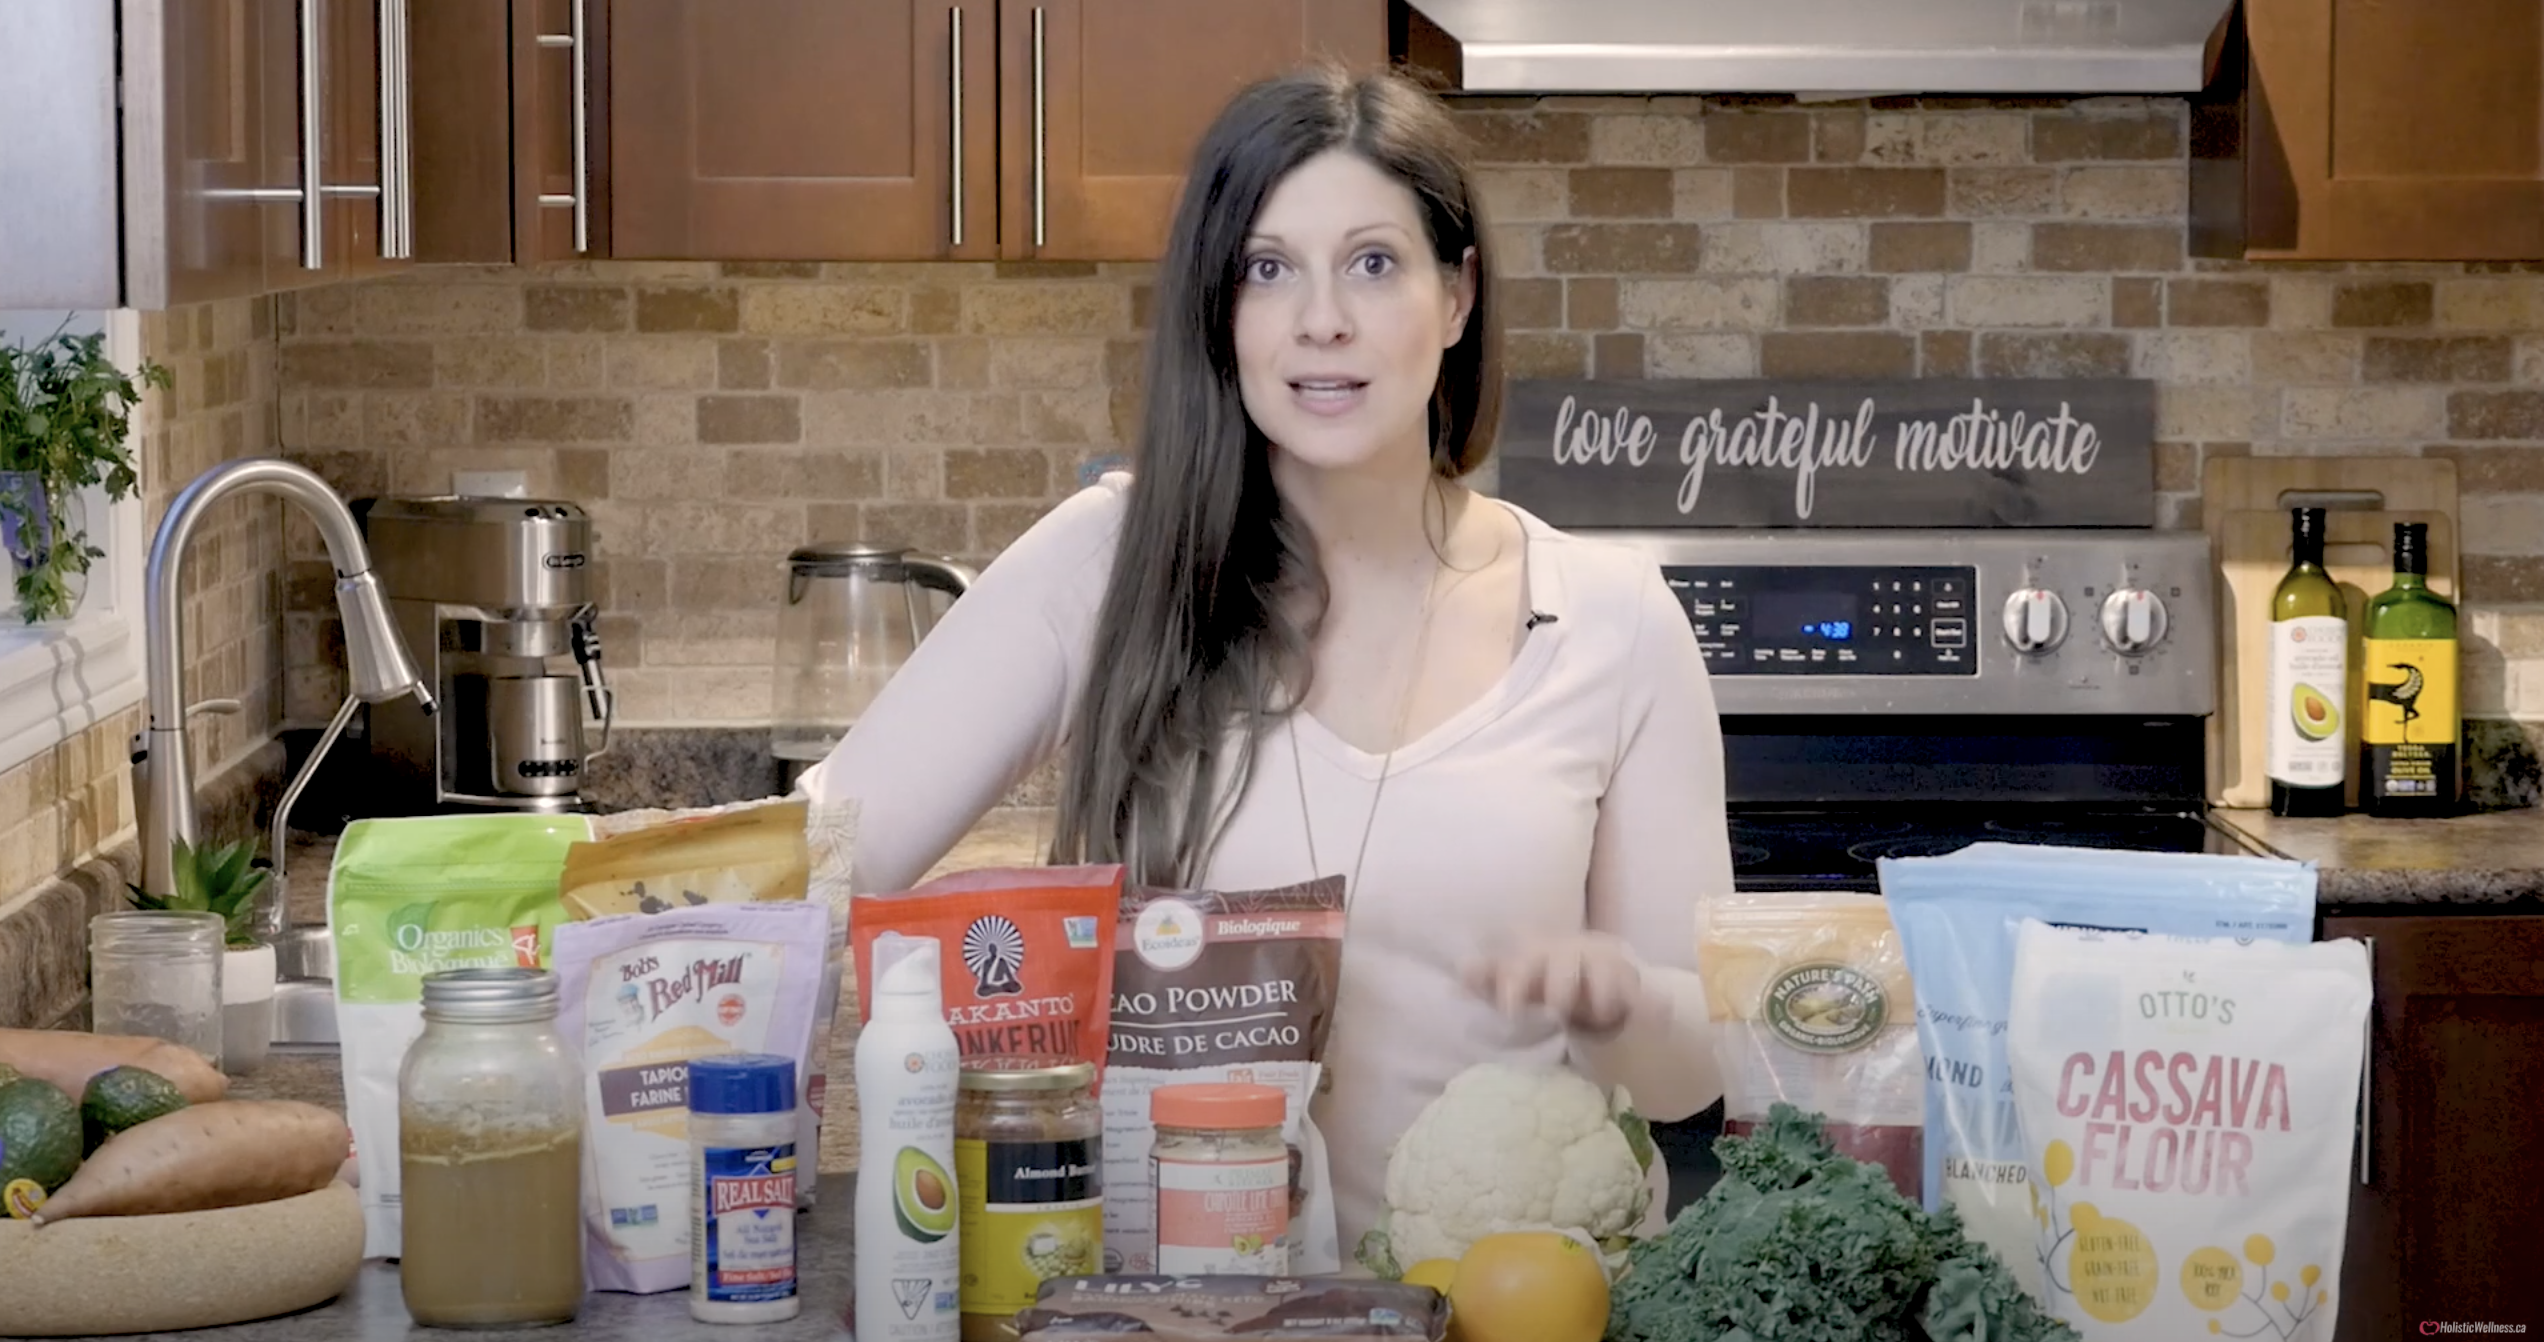 Pantry & Baking Essentials for Grain-Free + Gluten Free Cooking